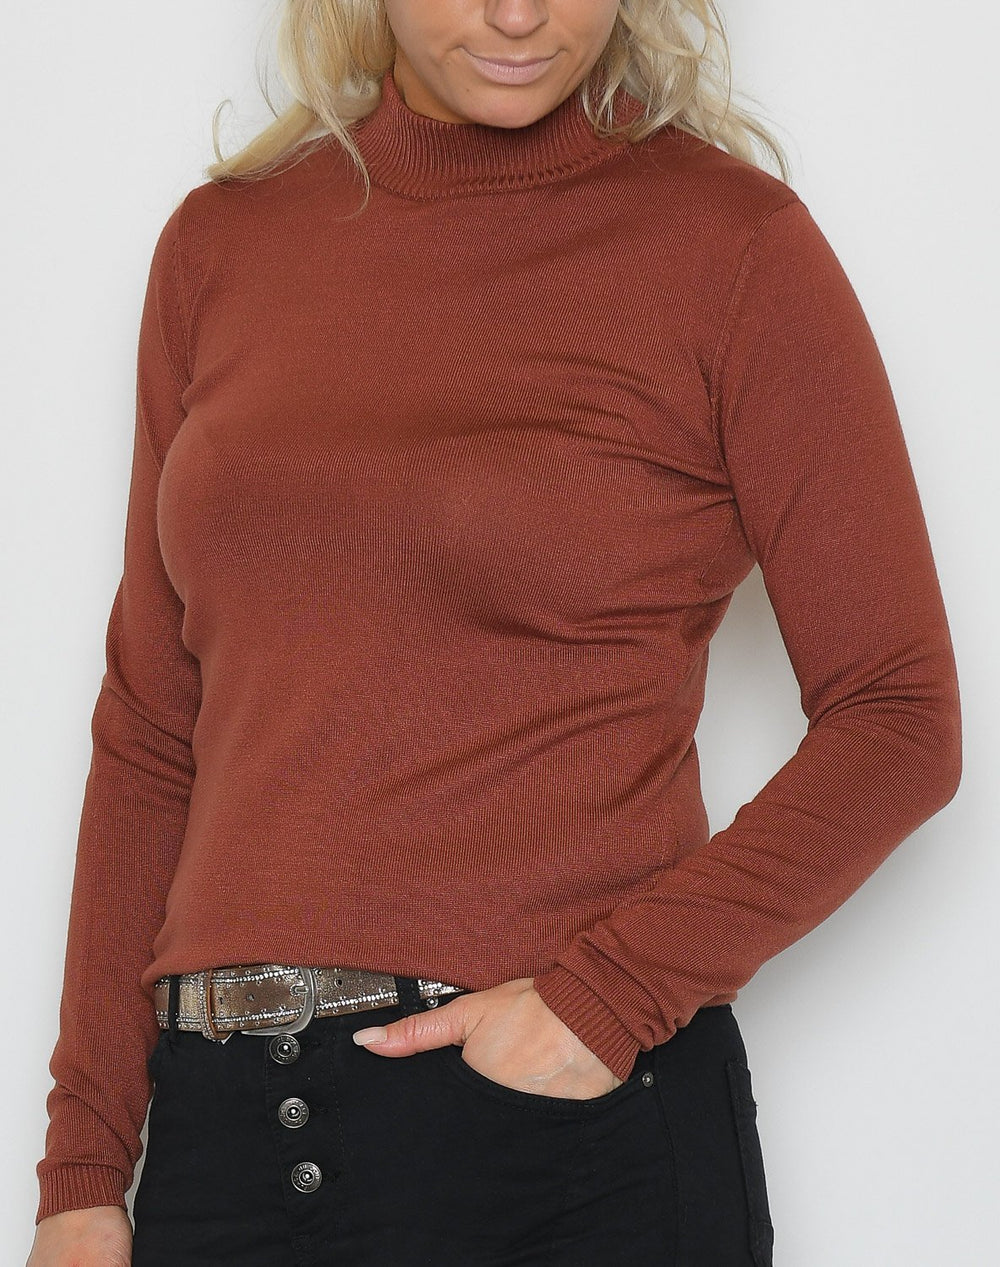 Soft Rebels Zara turtleneck bluse copper brown - Online-Mode